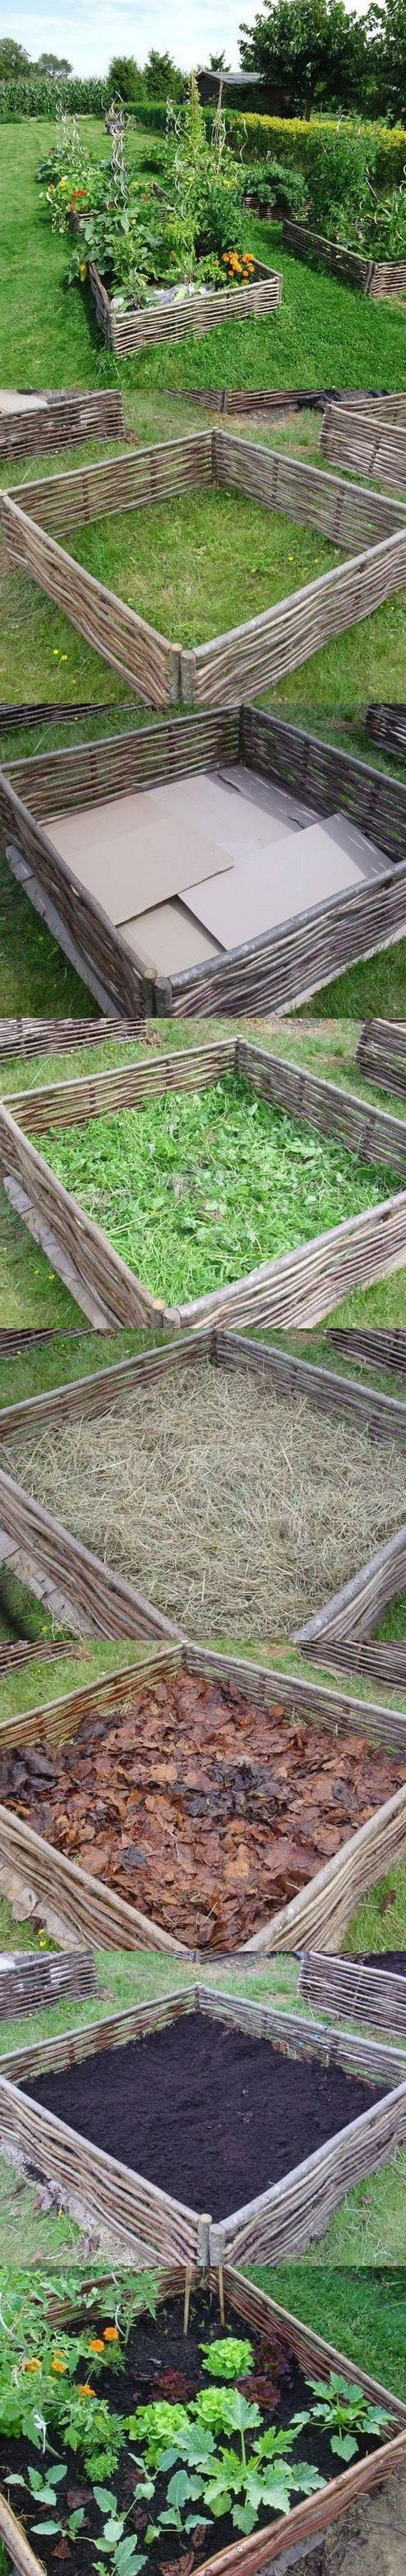 20-raised-garden-beds